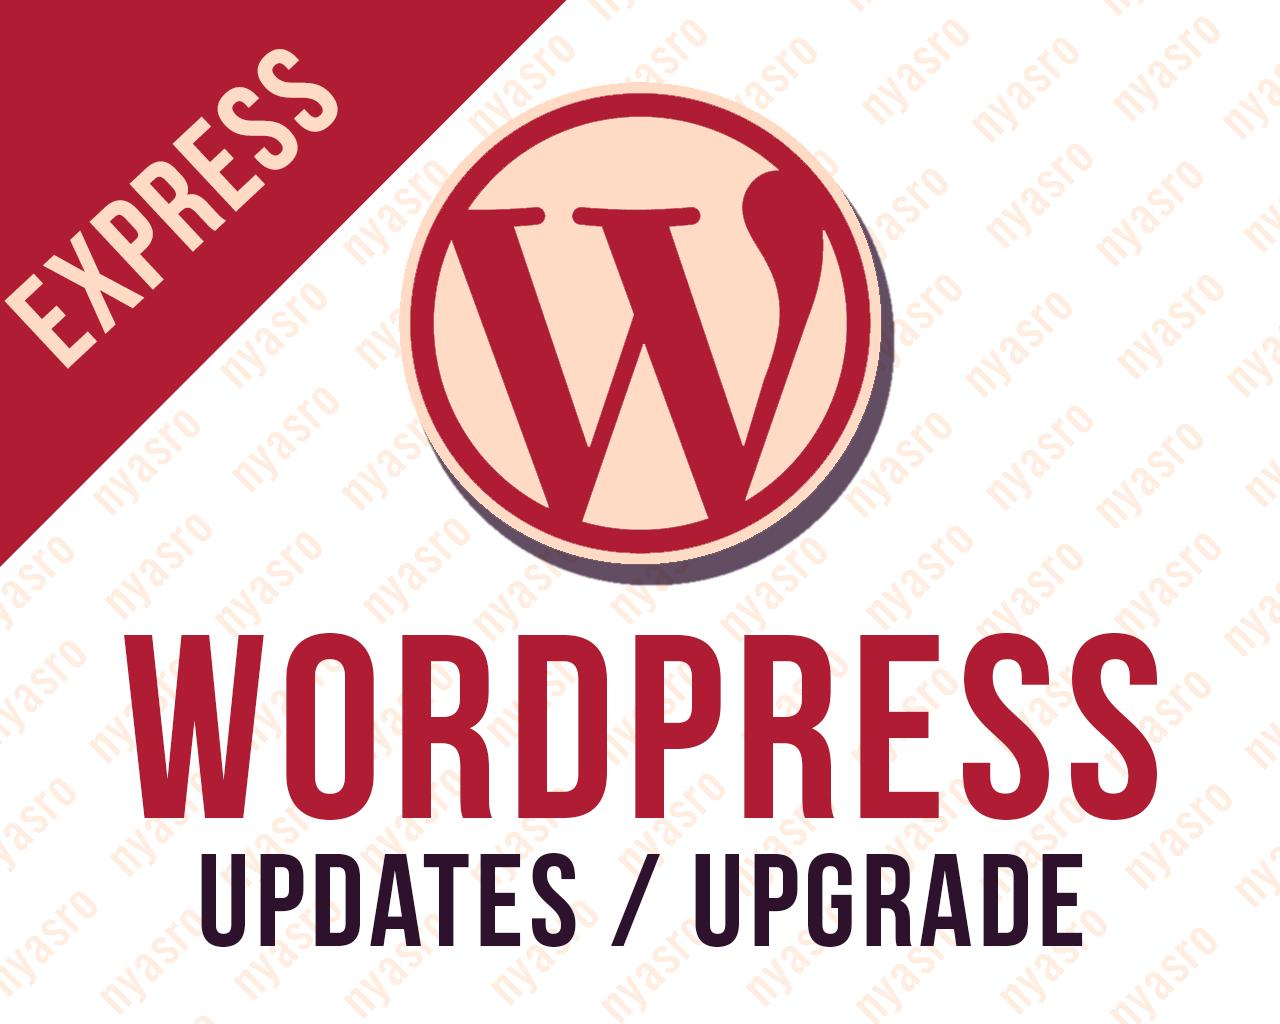 Express Wordpress Theme Update with BACKUP to Latest Version by nyasro - 99796